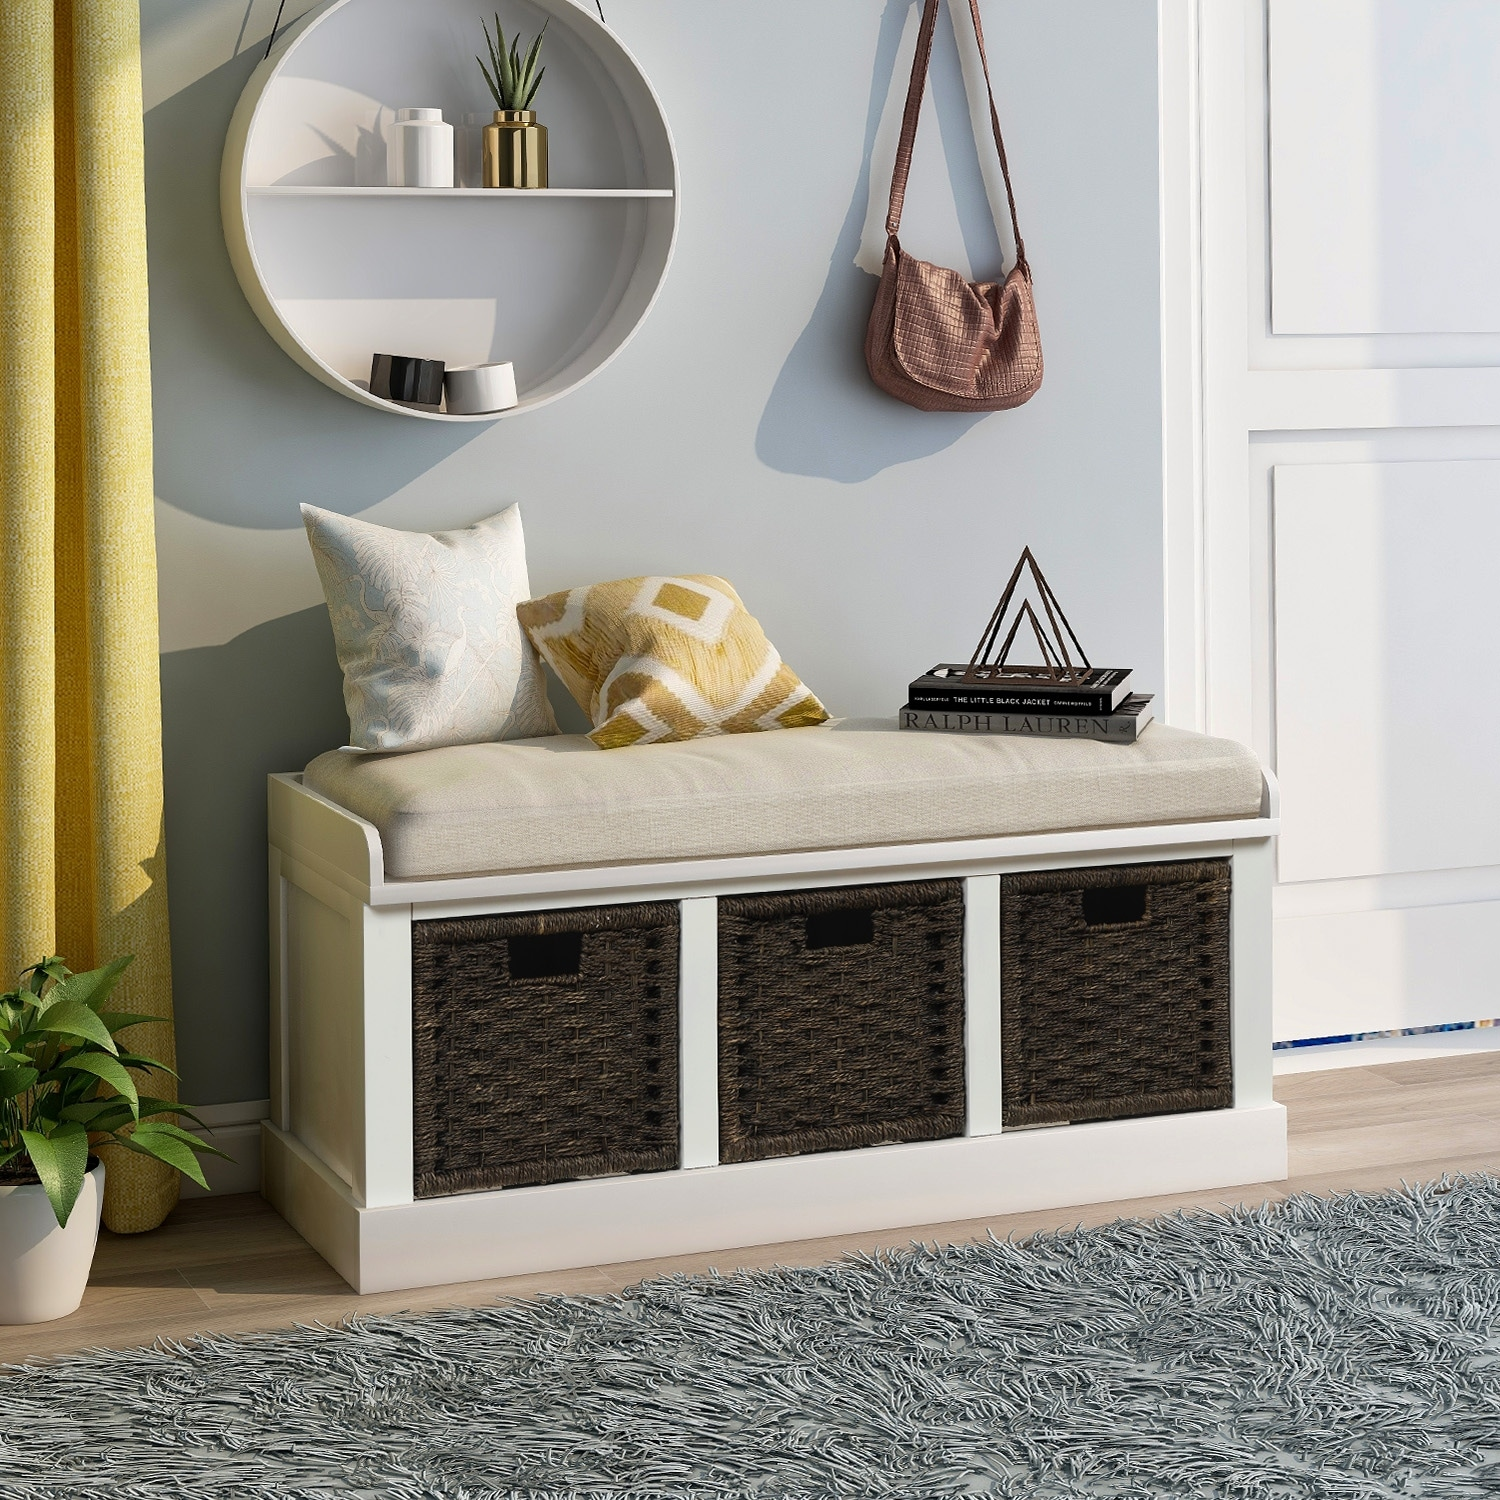 White Entryway Bench Storage With Basket And Removable Cushion On Sale Overstock 30992747